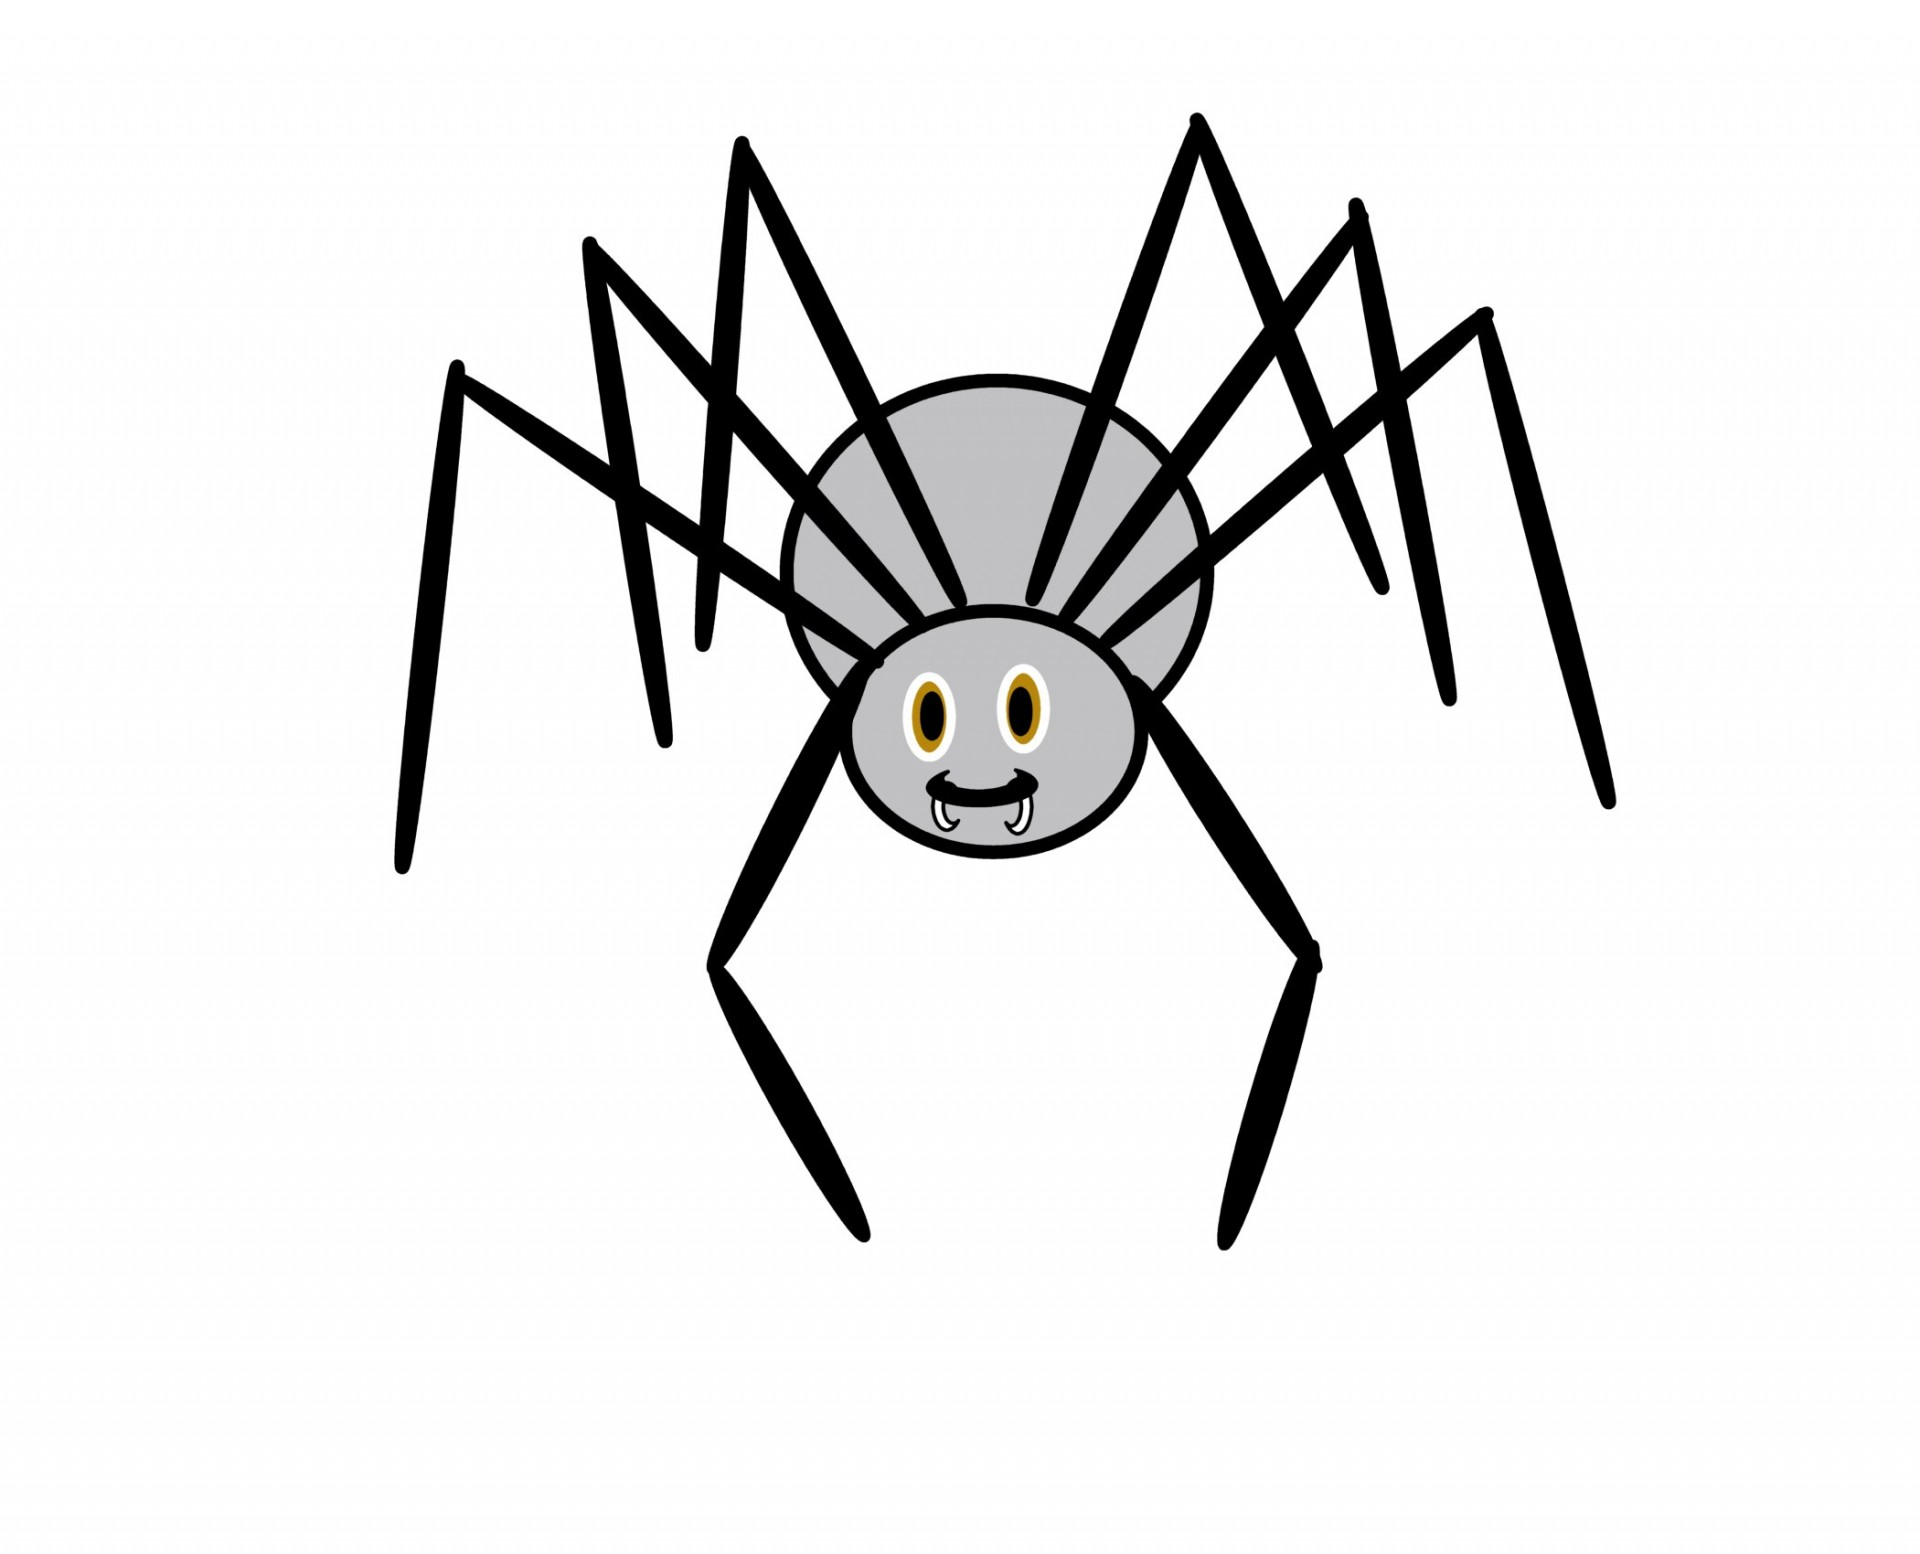 Spider clipart #2, Download drawings